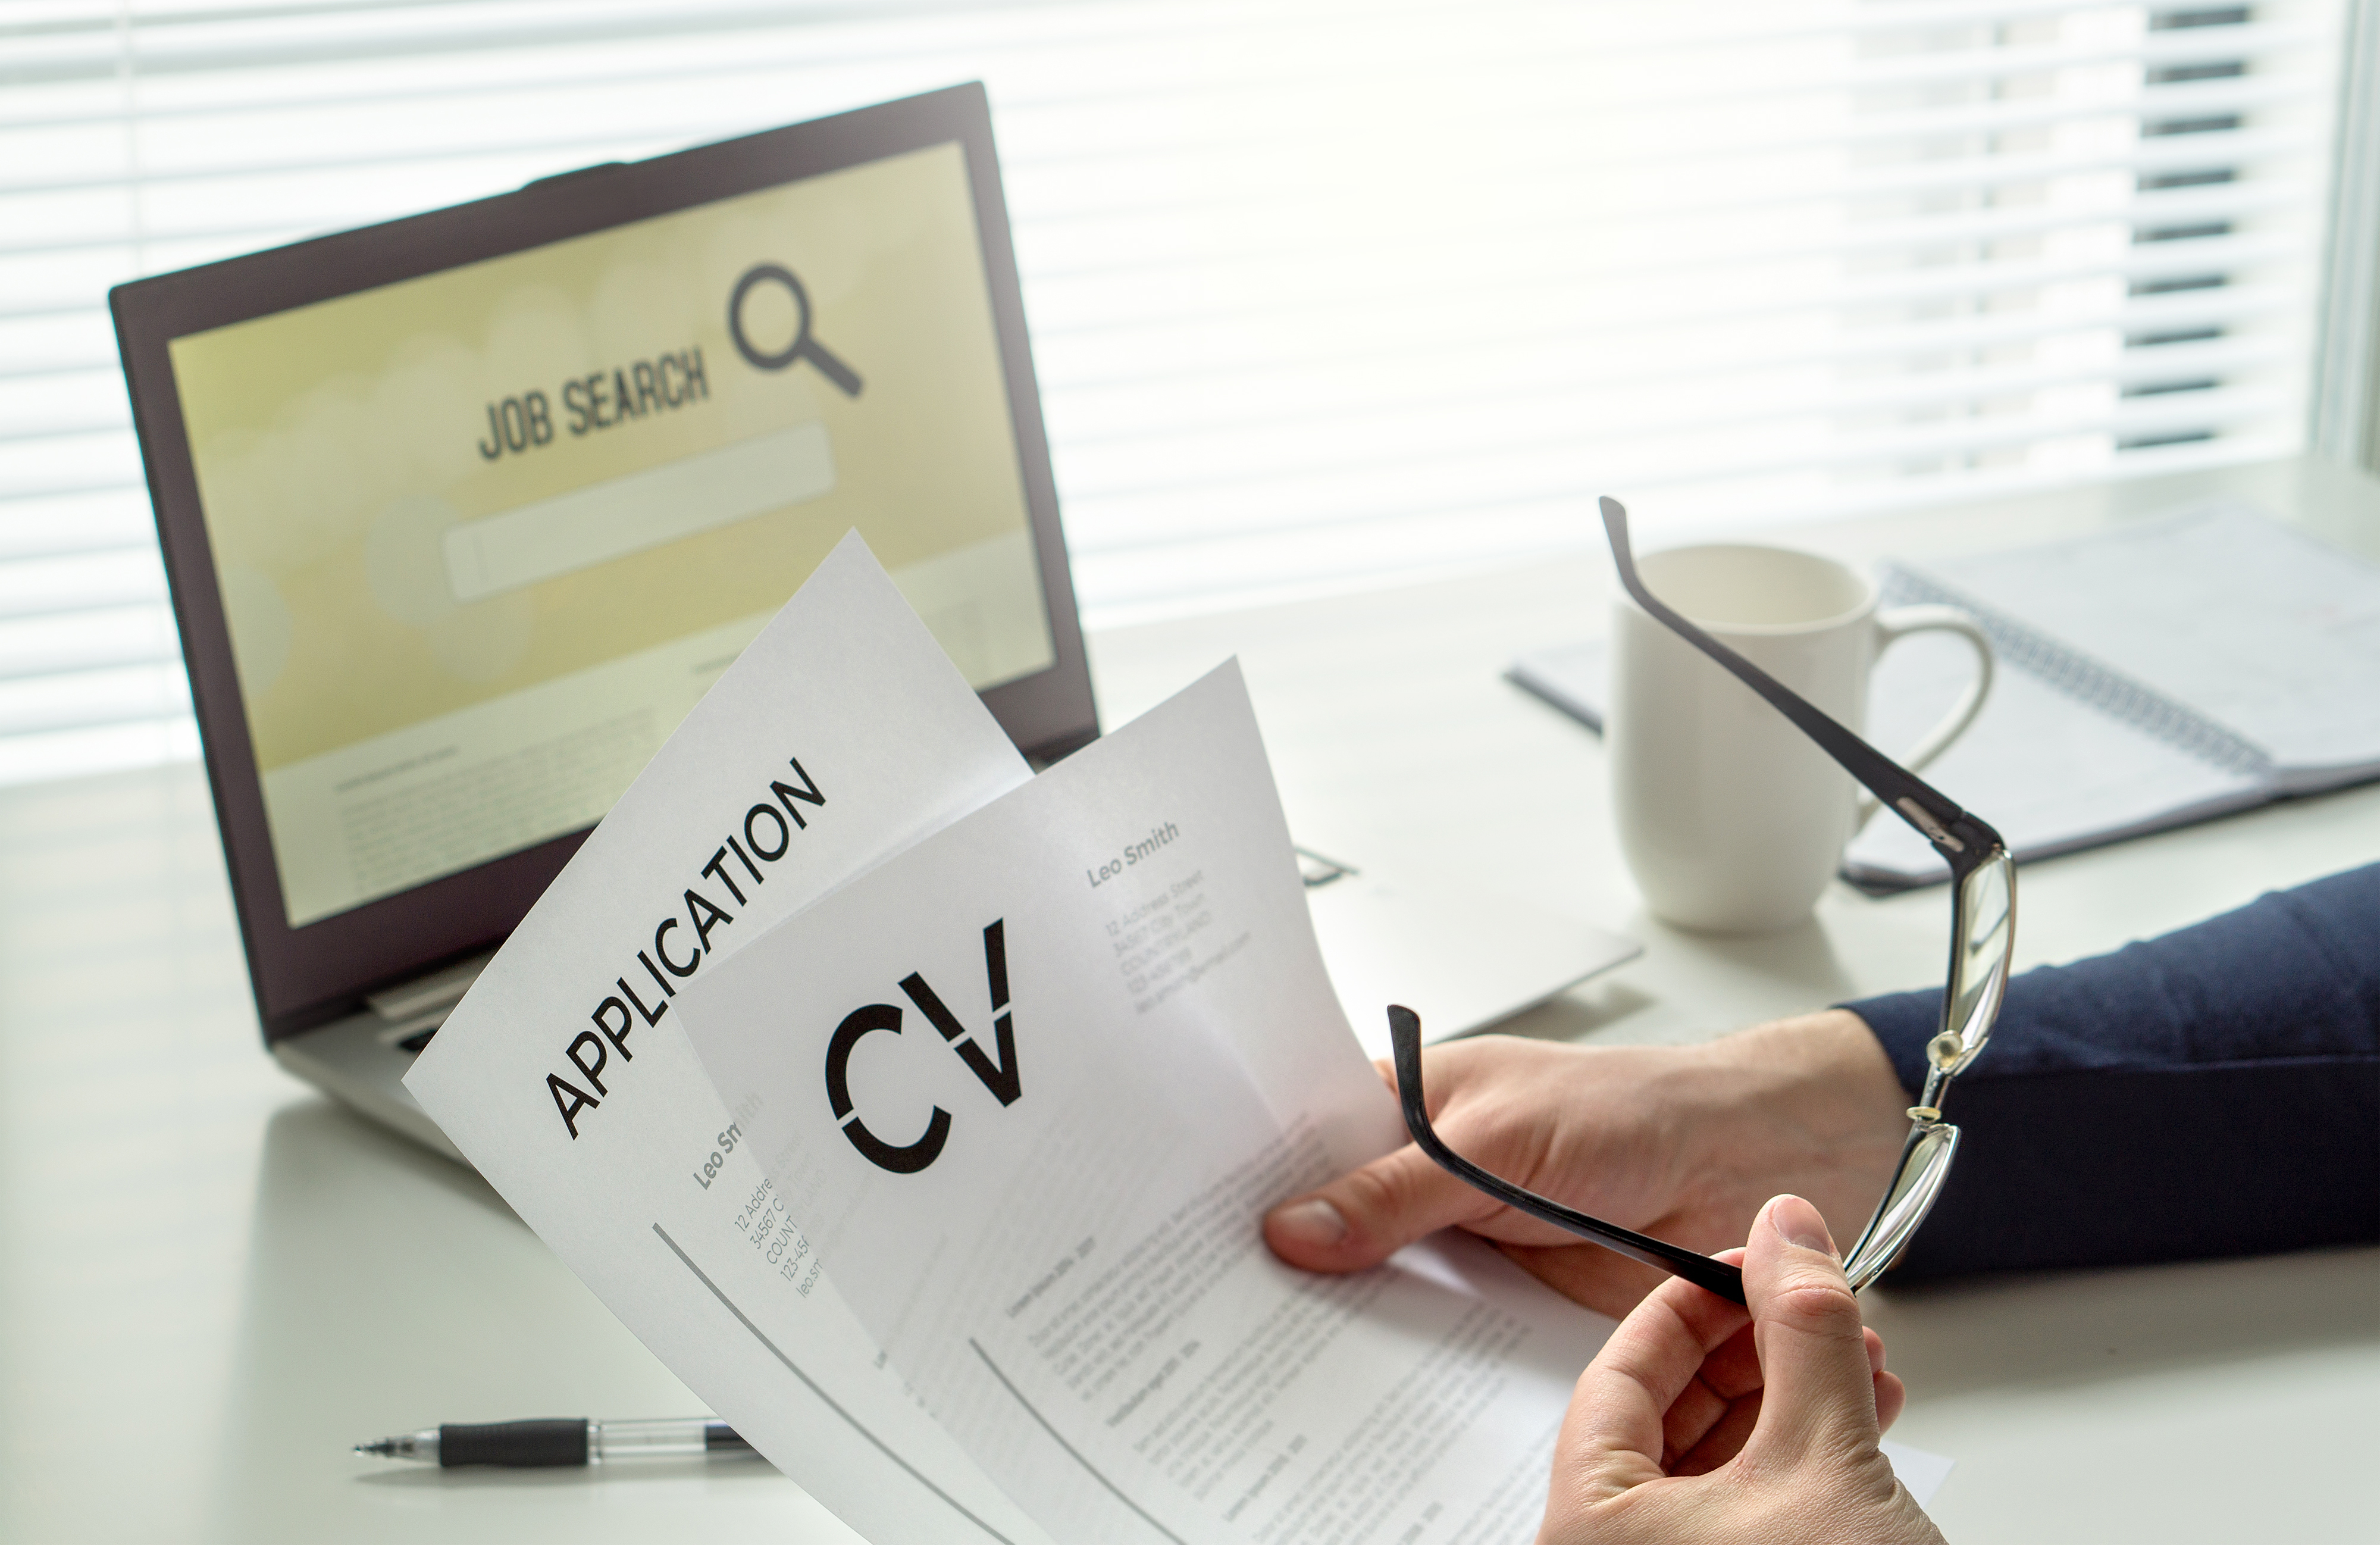 Top 5 Things to Avoid in a Cover Letter